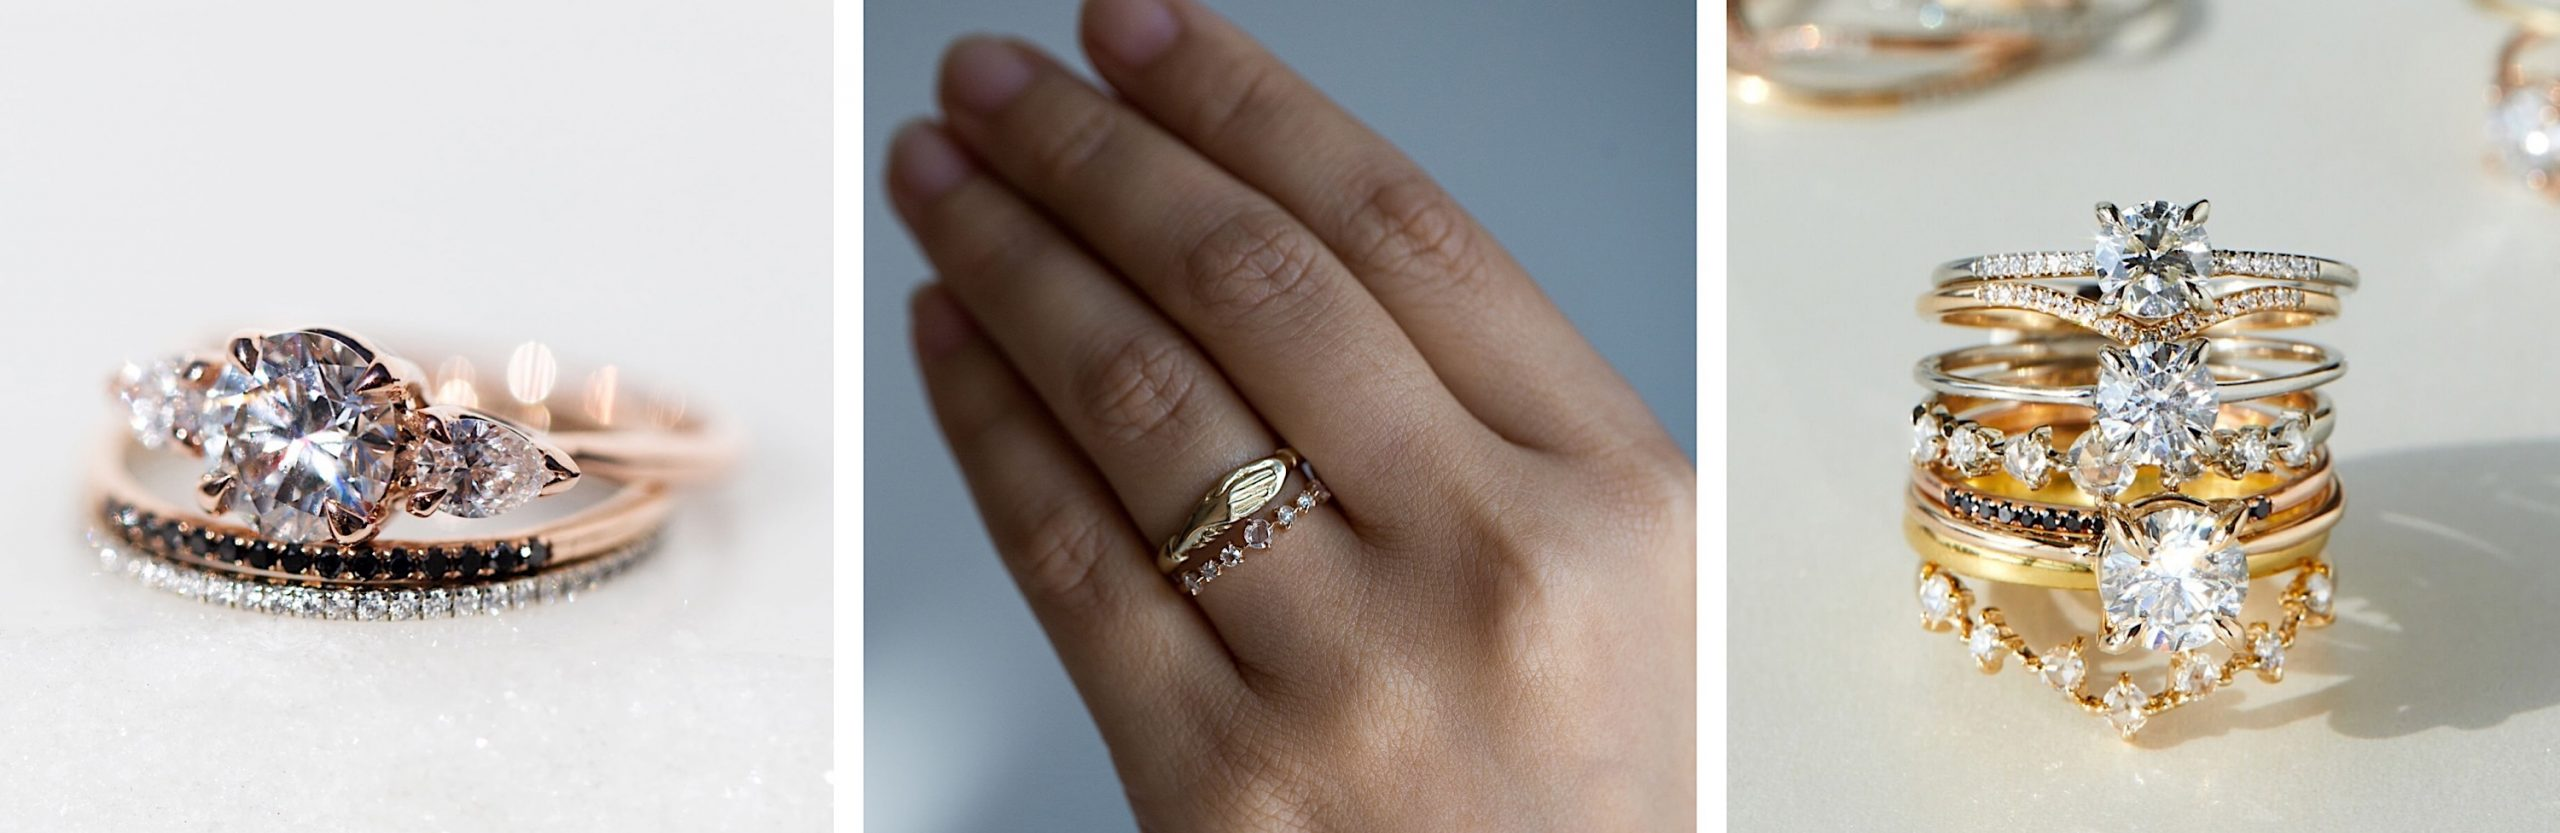 Three images side-by-side showcasing sustainable wedding and engagement rings by Catbird NYC.